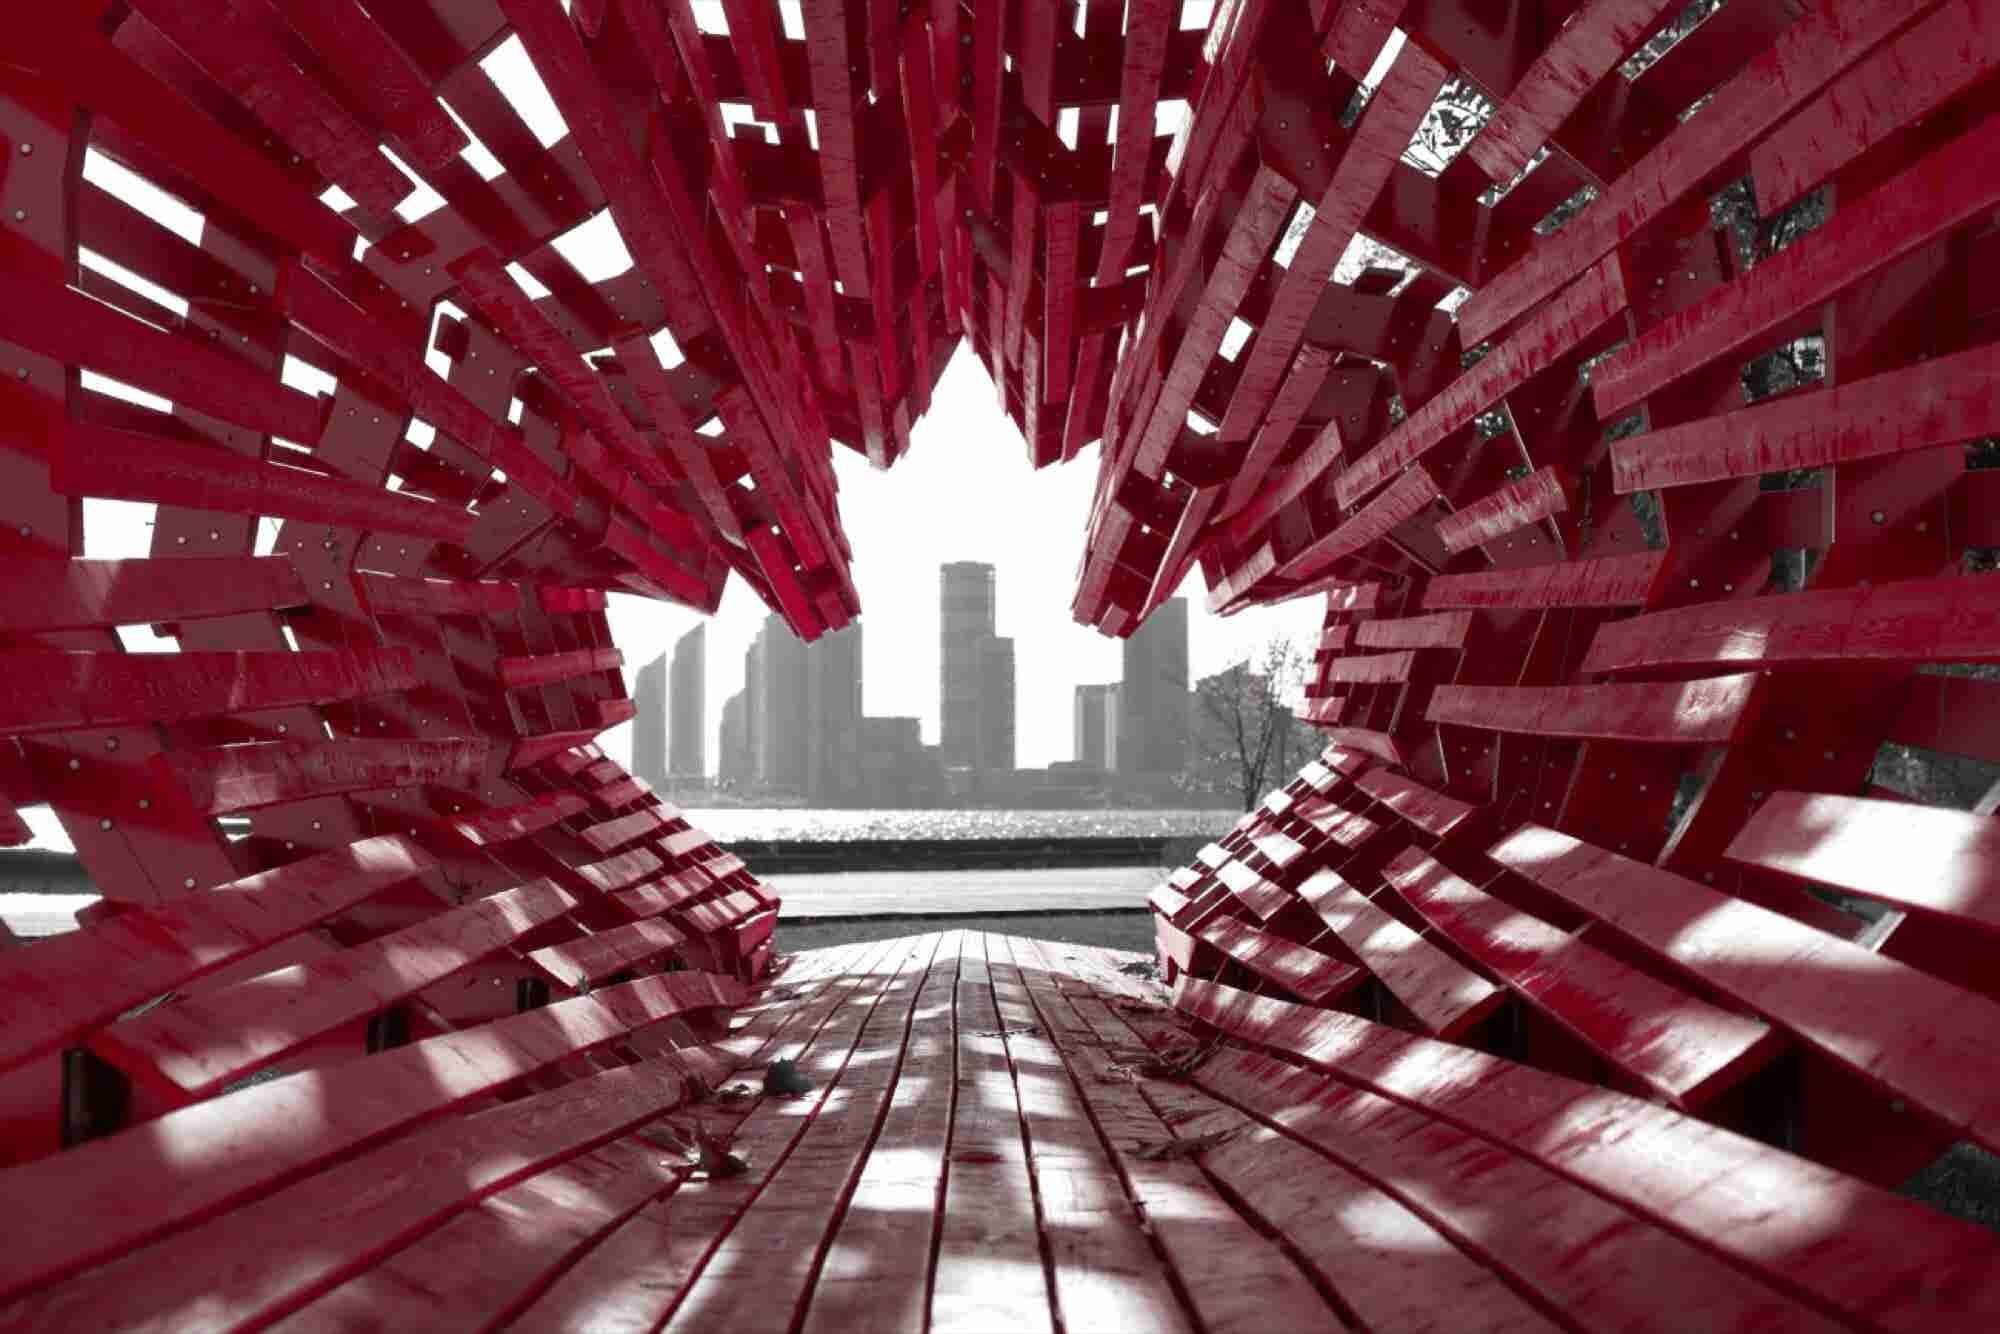 Regardless of What You May Think, Canada Has Always Been a Tech Hub